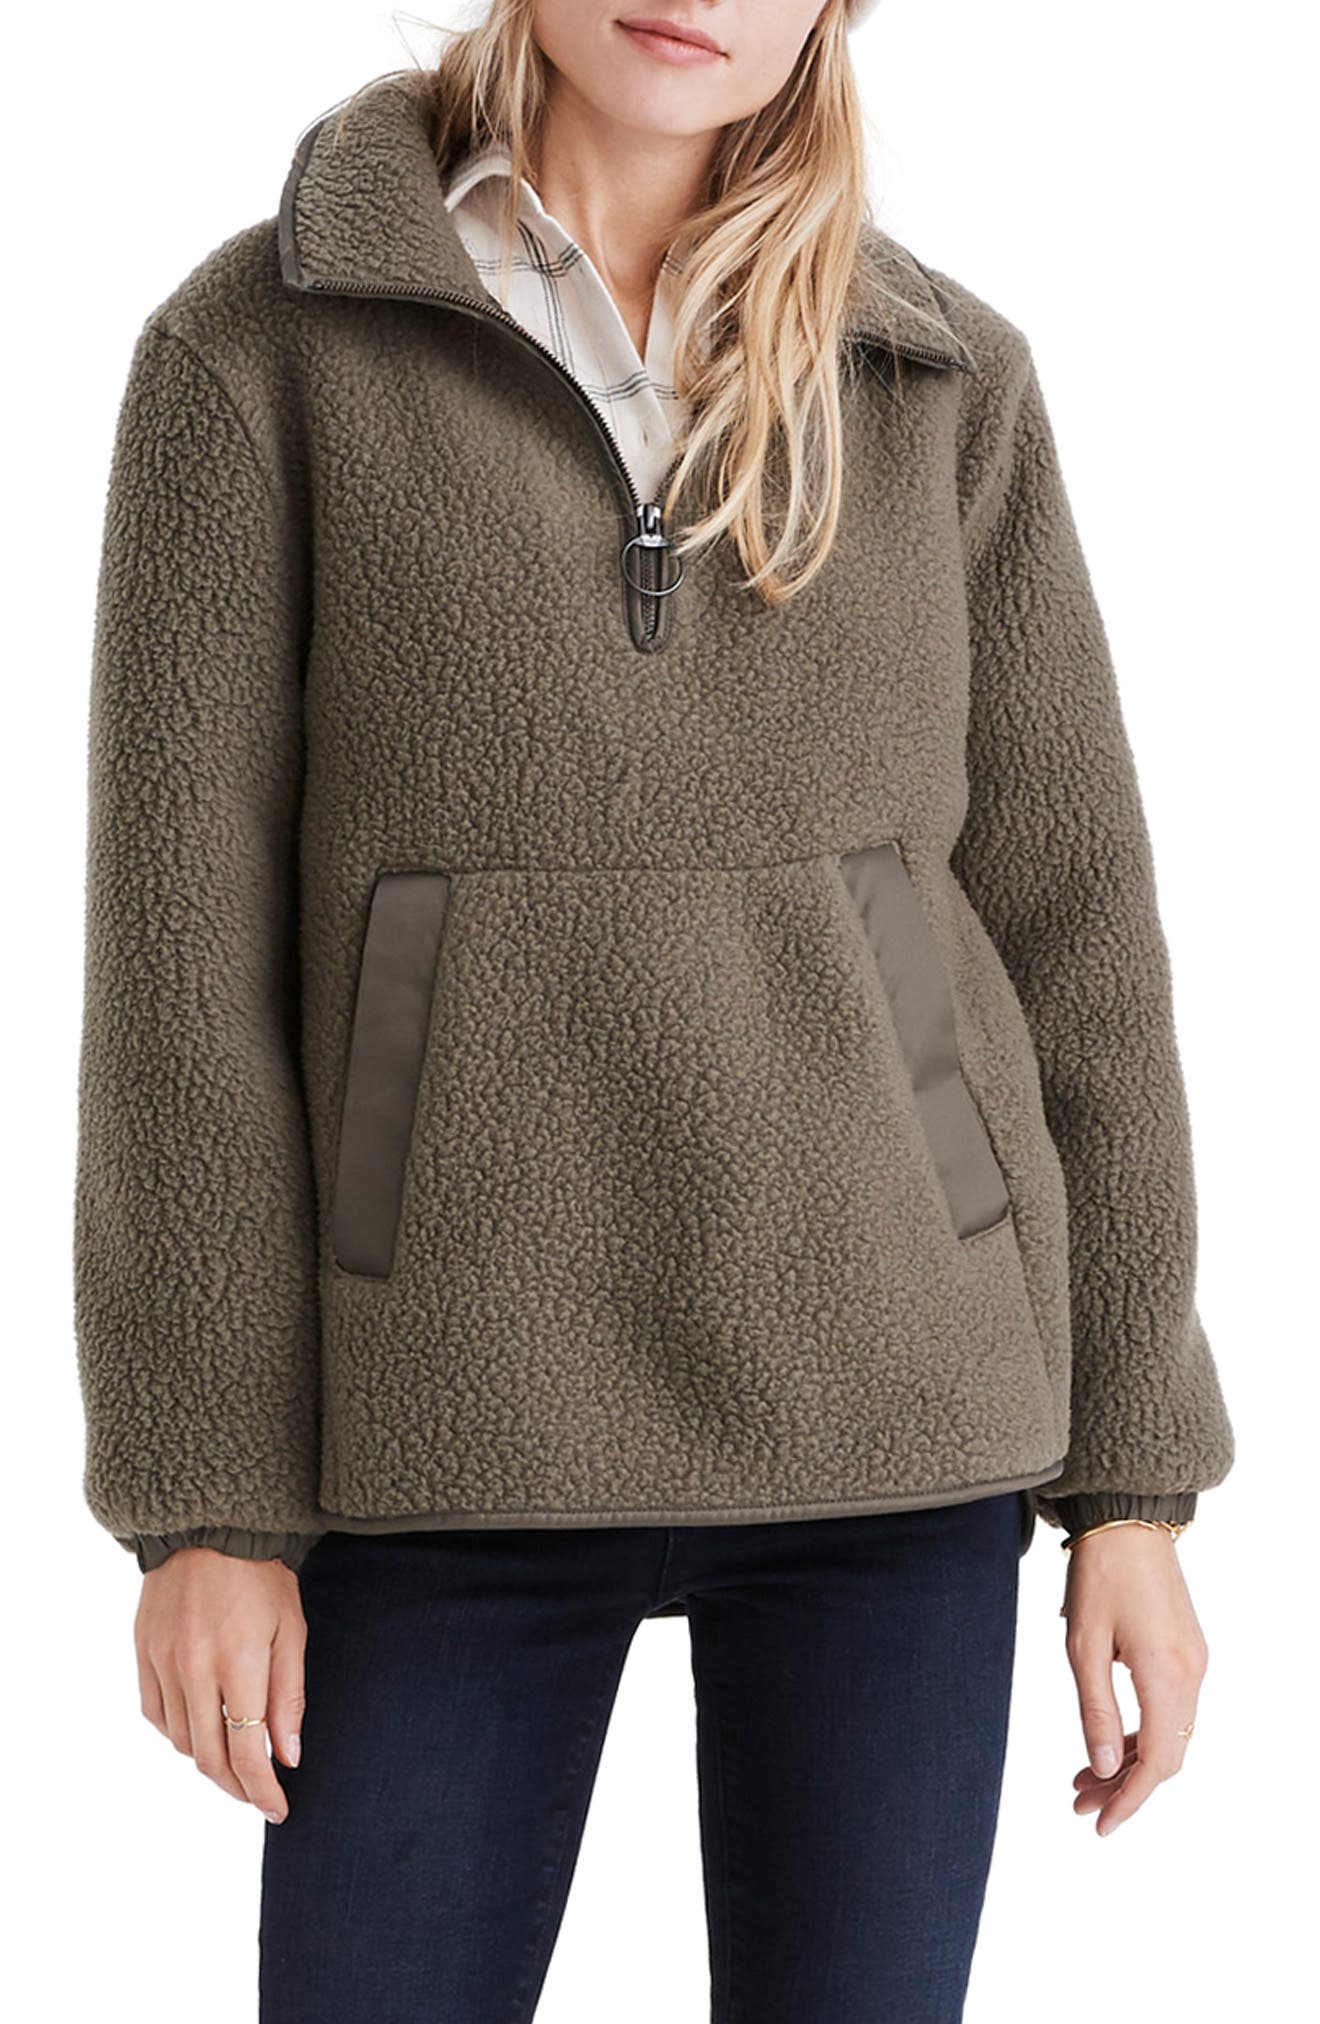 MADEWELL Polartec<sup>®</sup> Fleece Popover Jacket, Main, color, 300